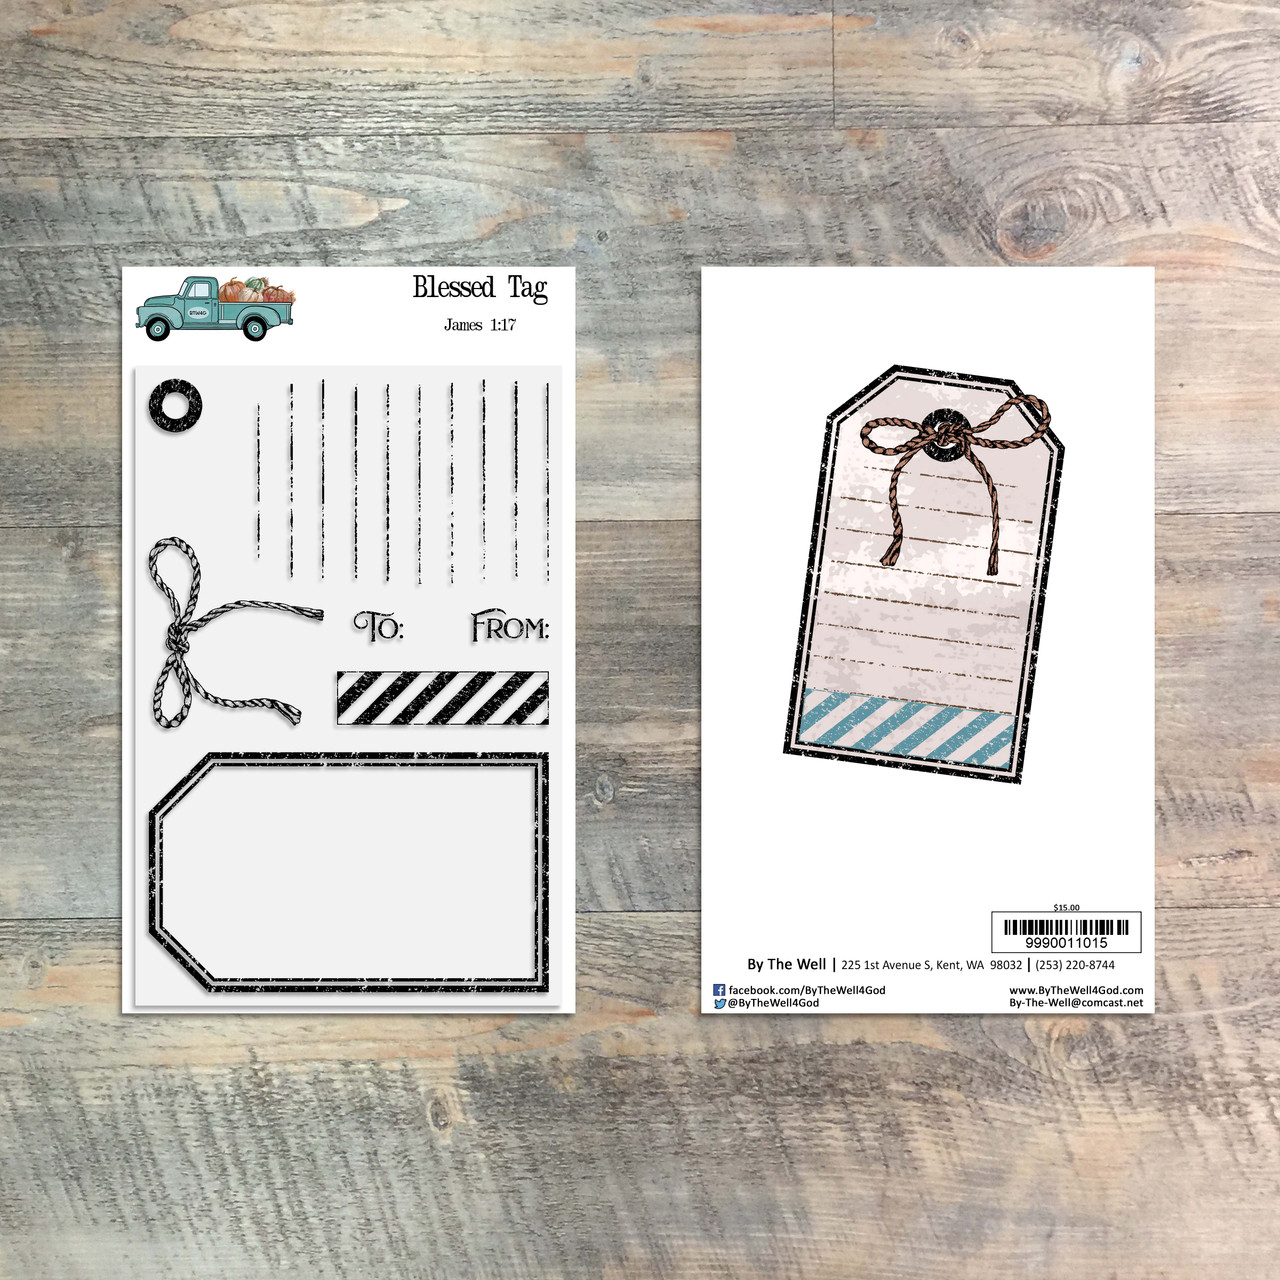 Blessed Tag - 7 Piece Stamp Set - ByTheWell4God